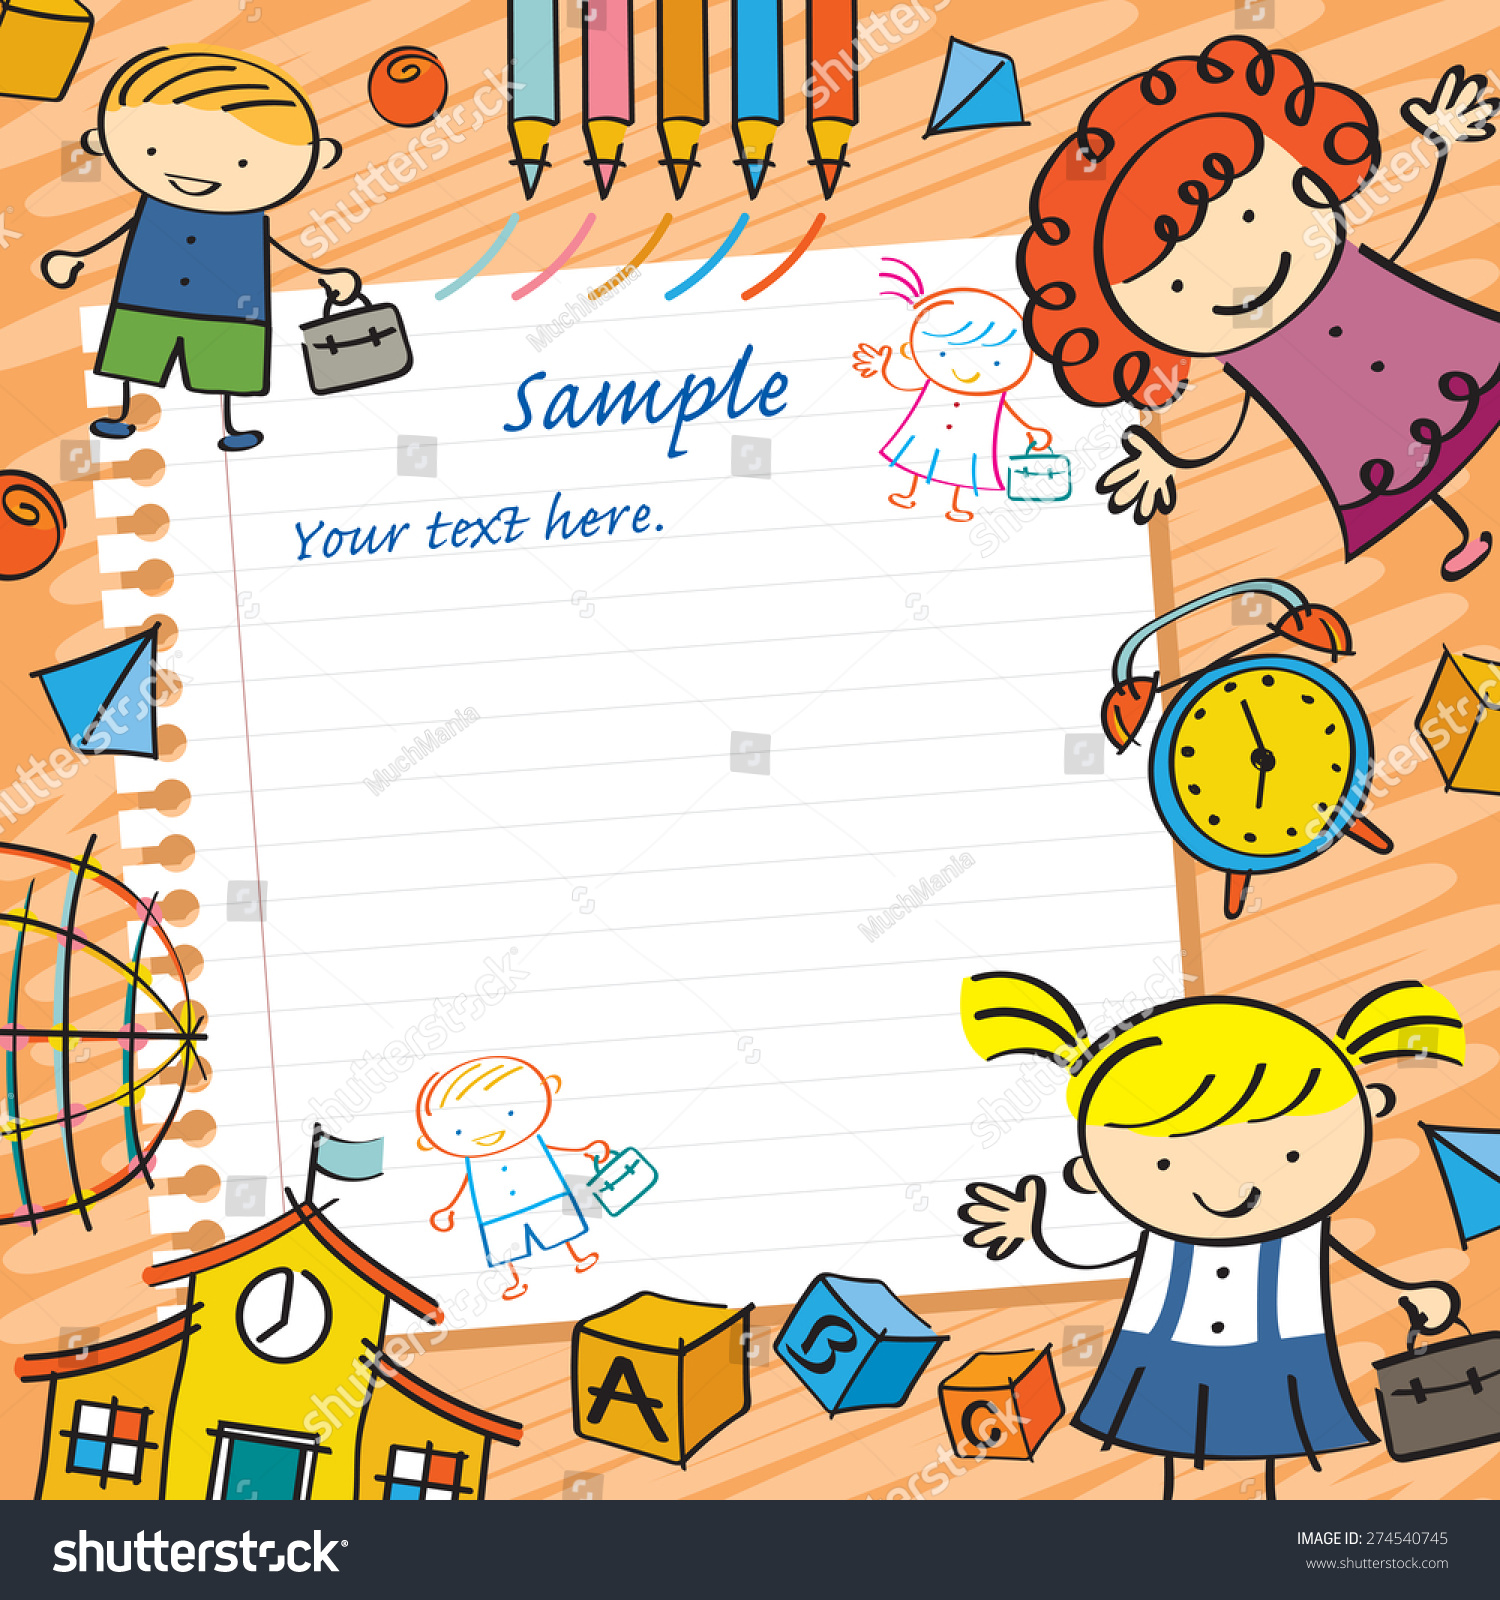 essay on kindergarten education Summary of writing standards for kindergarten students by understanding kindergarten writing standards texas, and california, as well as on the standards published by nationally recognized education organizations.